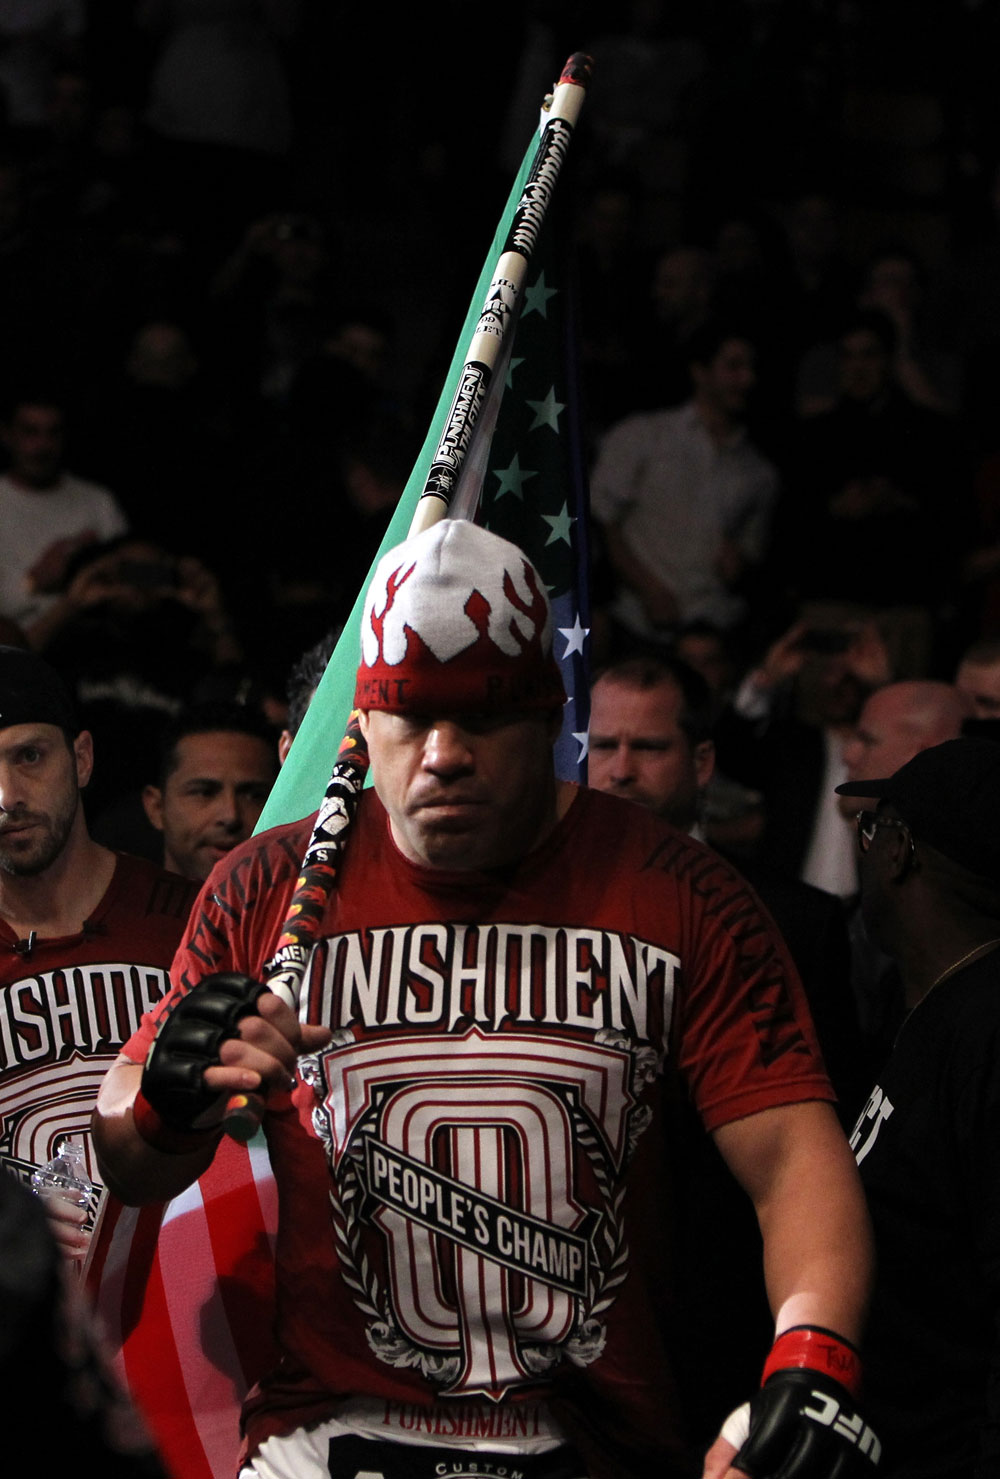 TORONTO, ON - DECEMBER 10:  Tito Ortiz enters the arena before his bout against Antonio Rogerio Nogueira during the UFC 140 event at Air Canada Centre on December 10, 2011 in Toronto, Ontario, Canada.  (Photo by Josh Hedges/Zuffa LLC/Zuffa LLC via Getty Images)